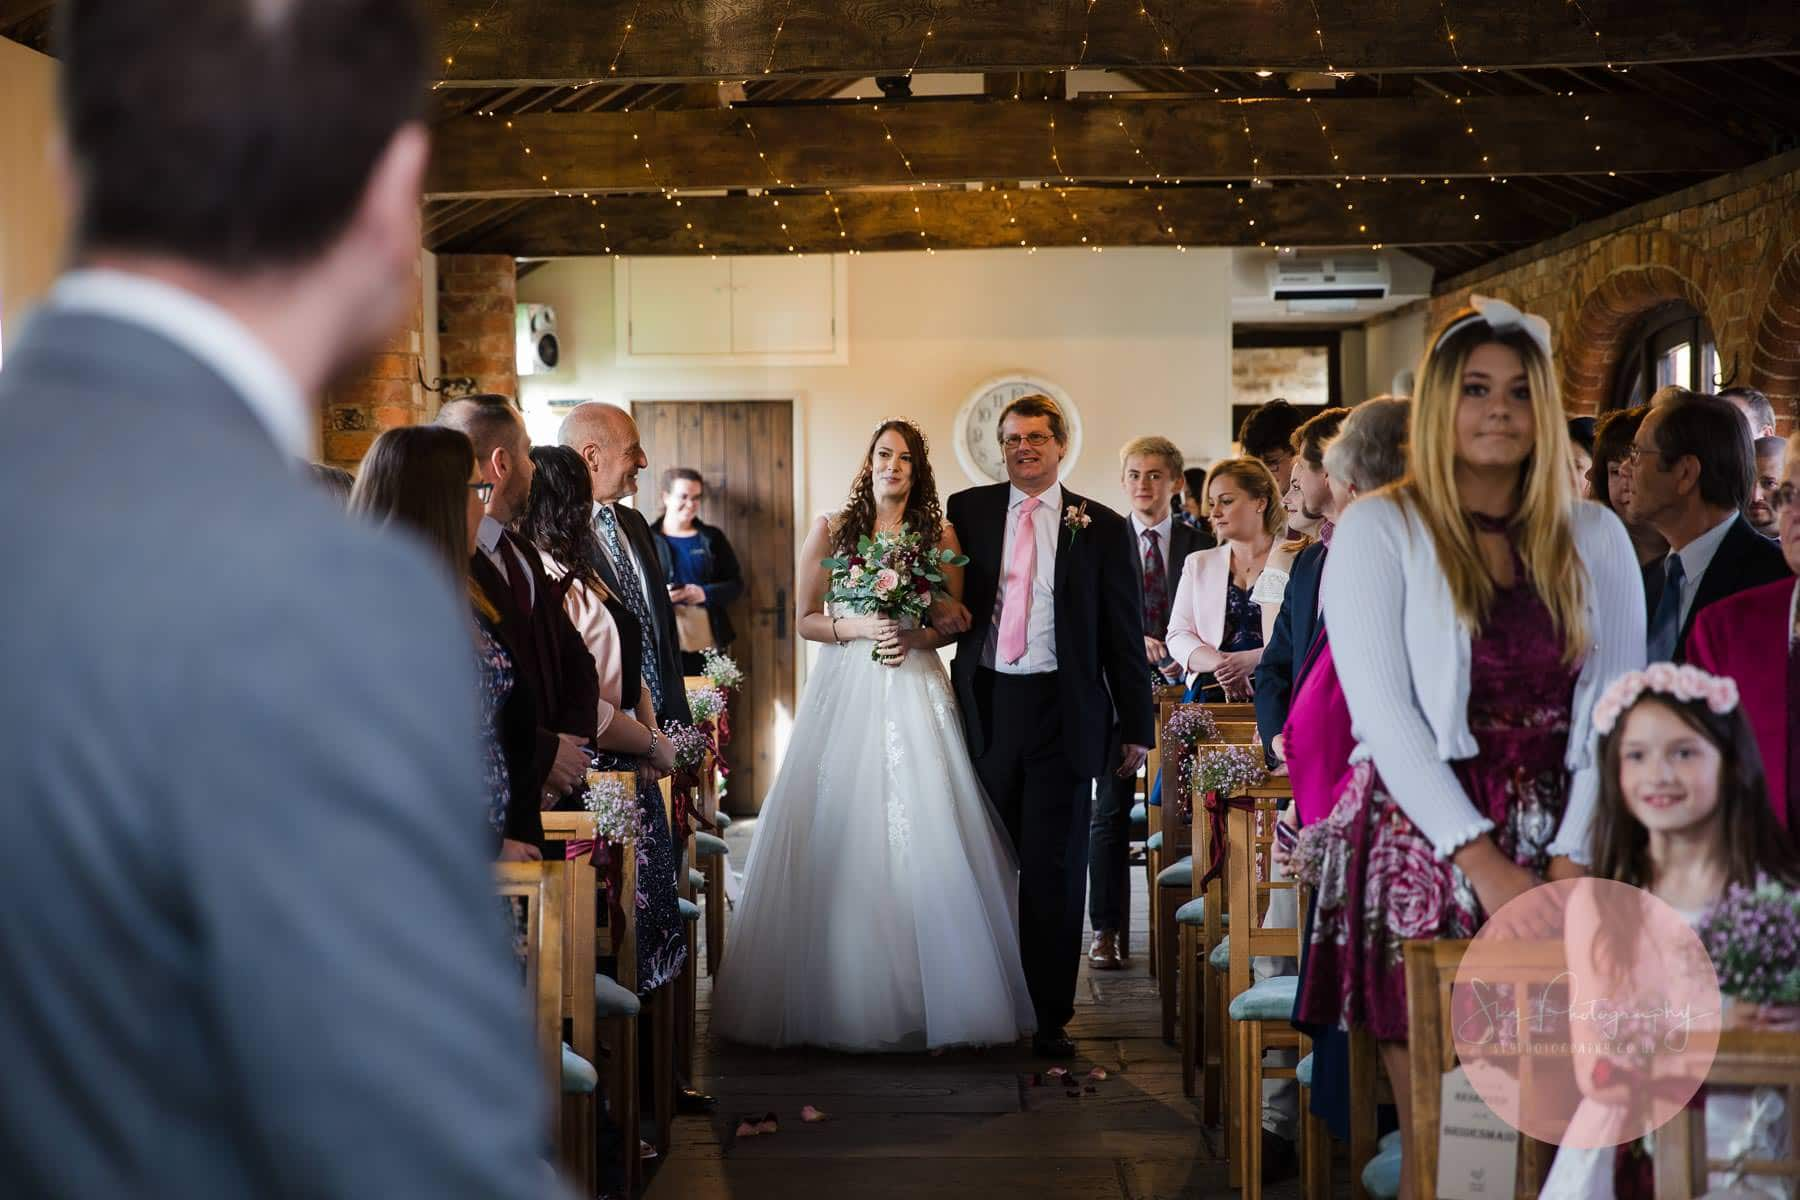 bride walking down the aisle with her guests looking on